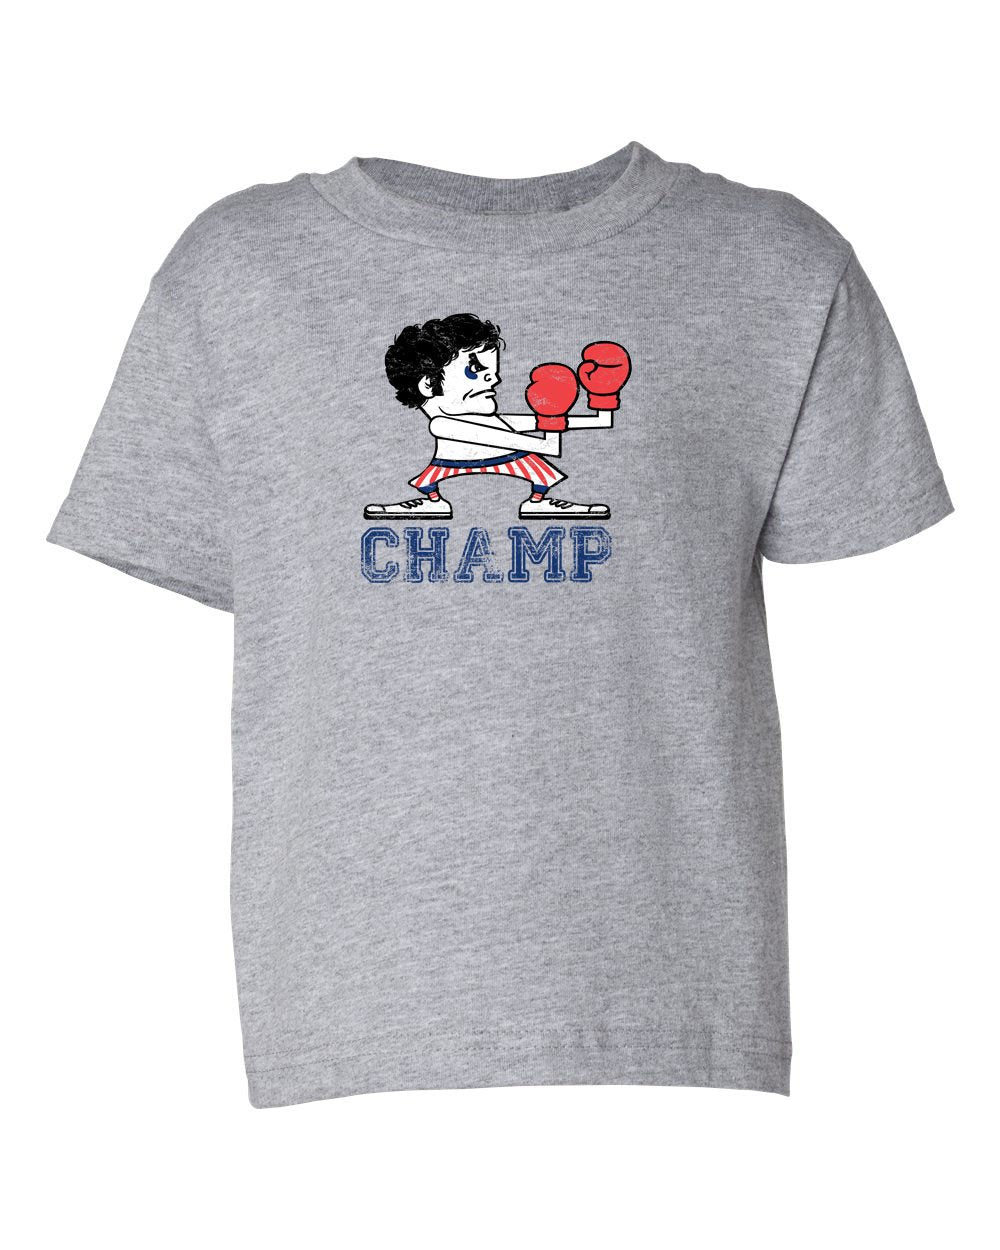 Champ TODDLER T-Shirt